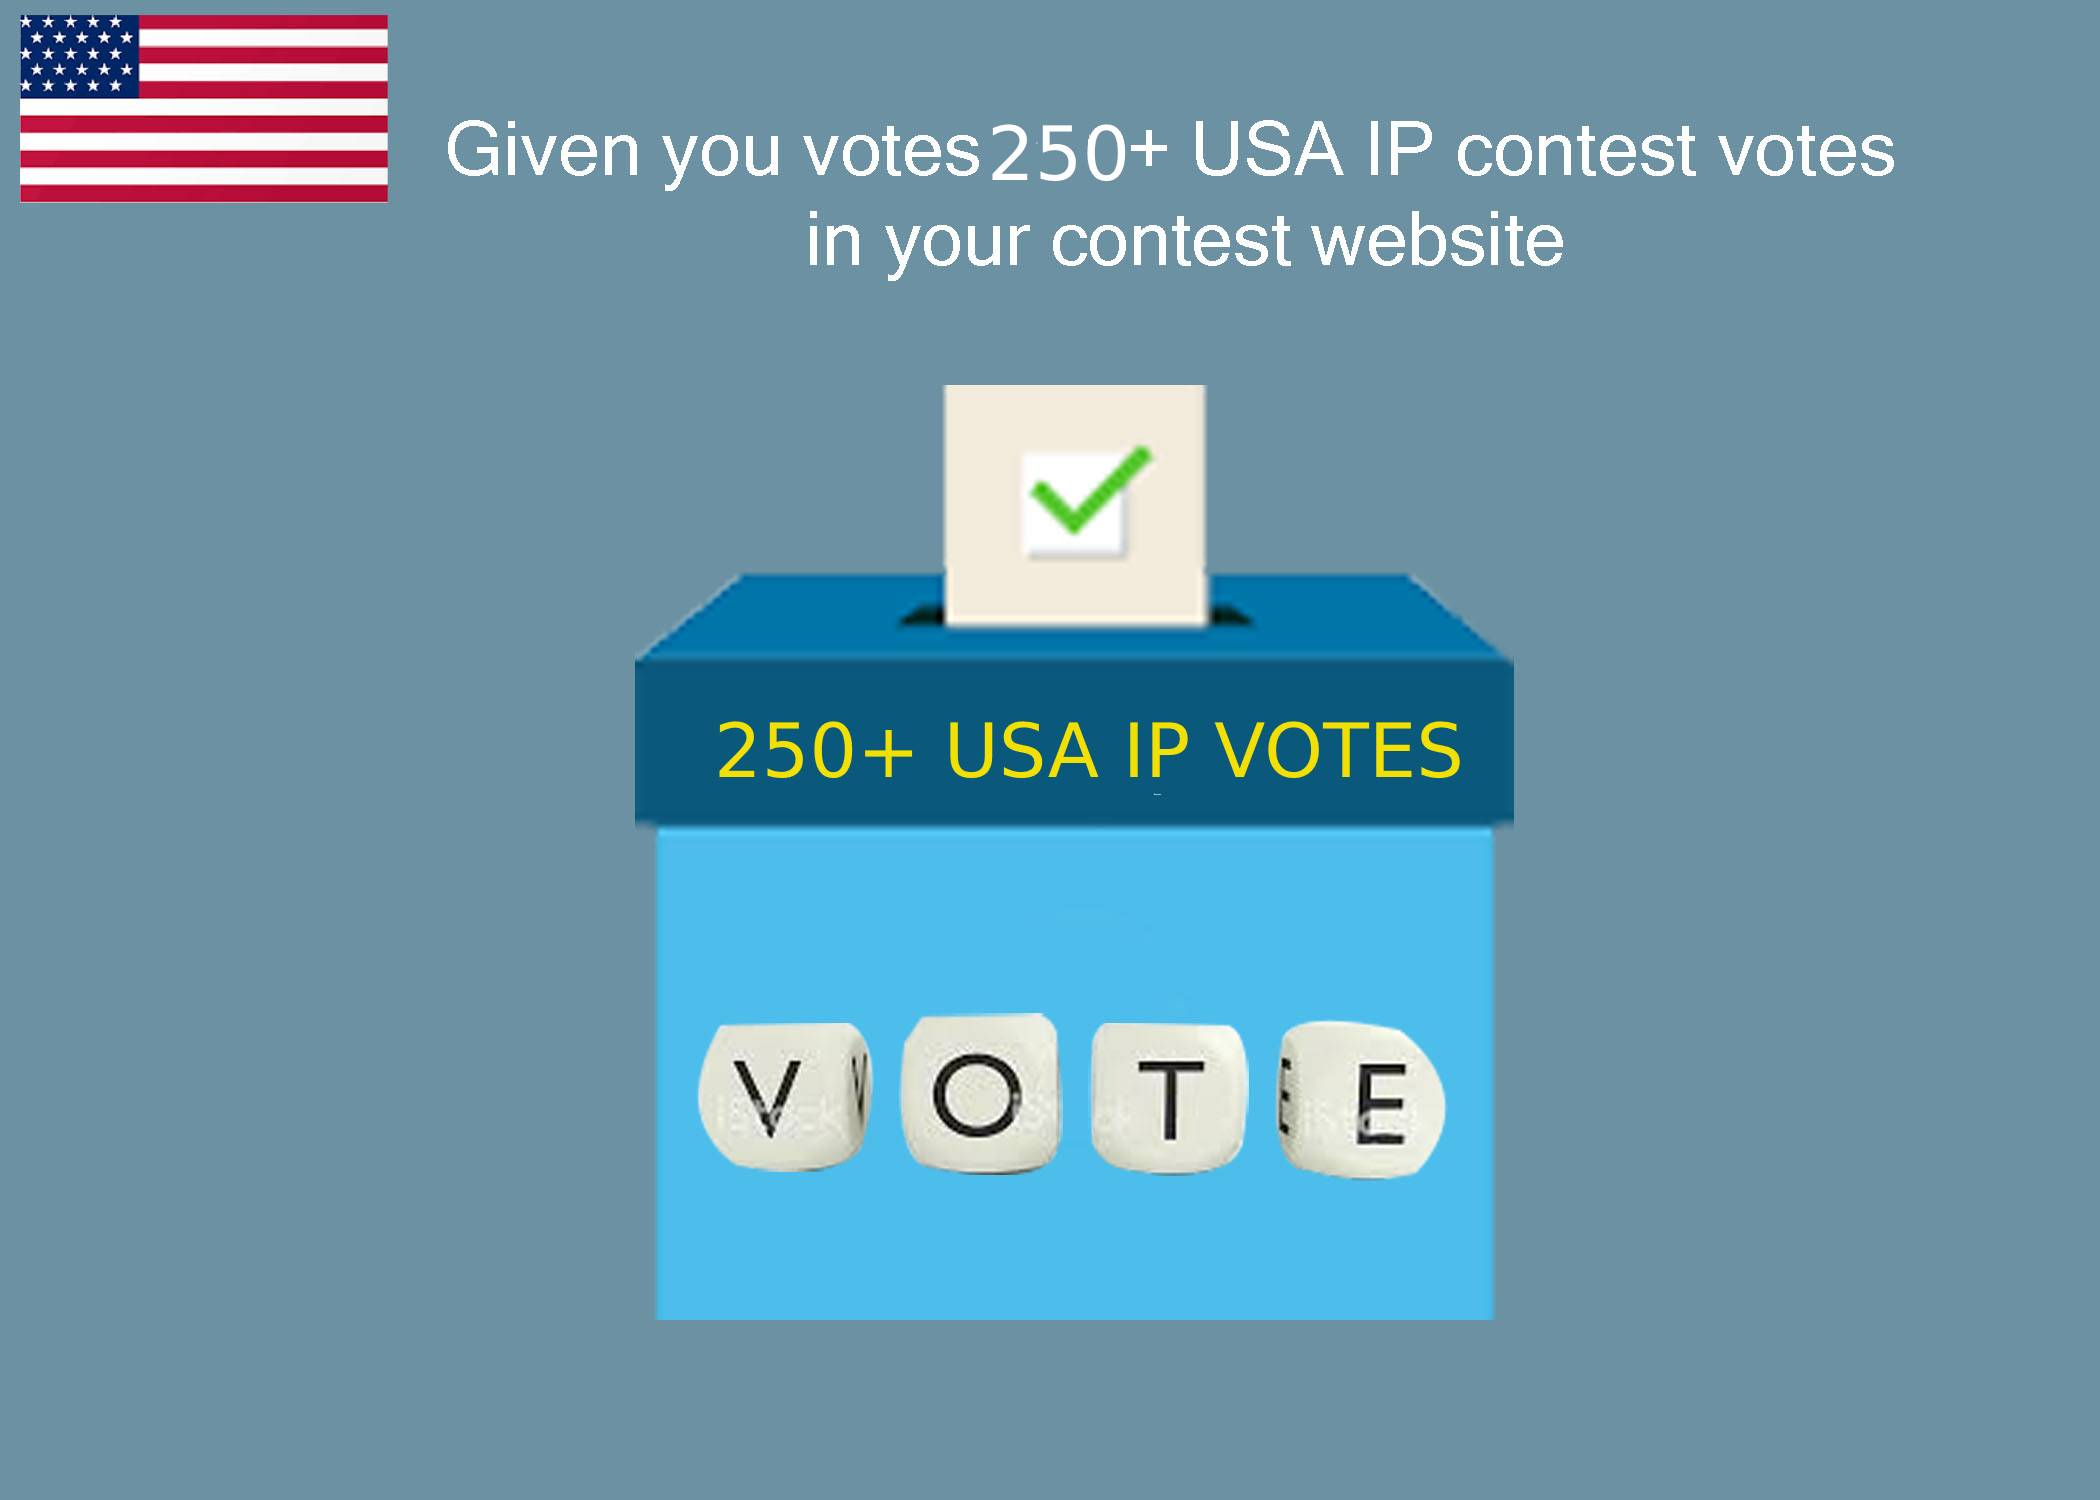 Given your link votes 250+ USA Ip online contest votes in your winner link/website